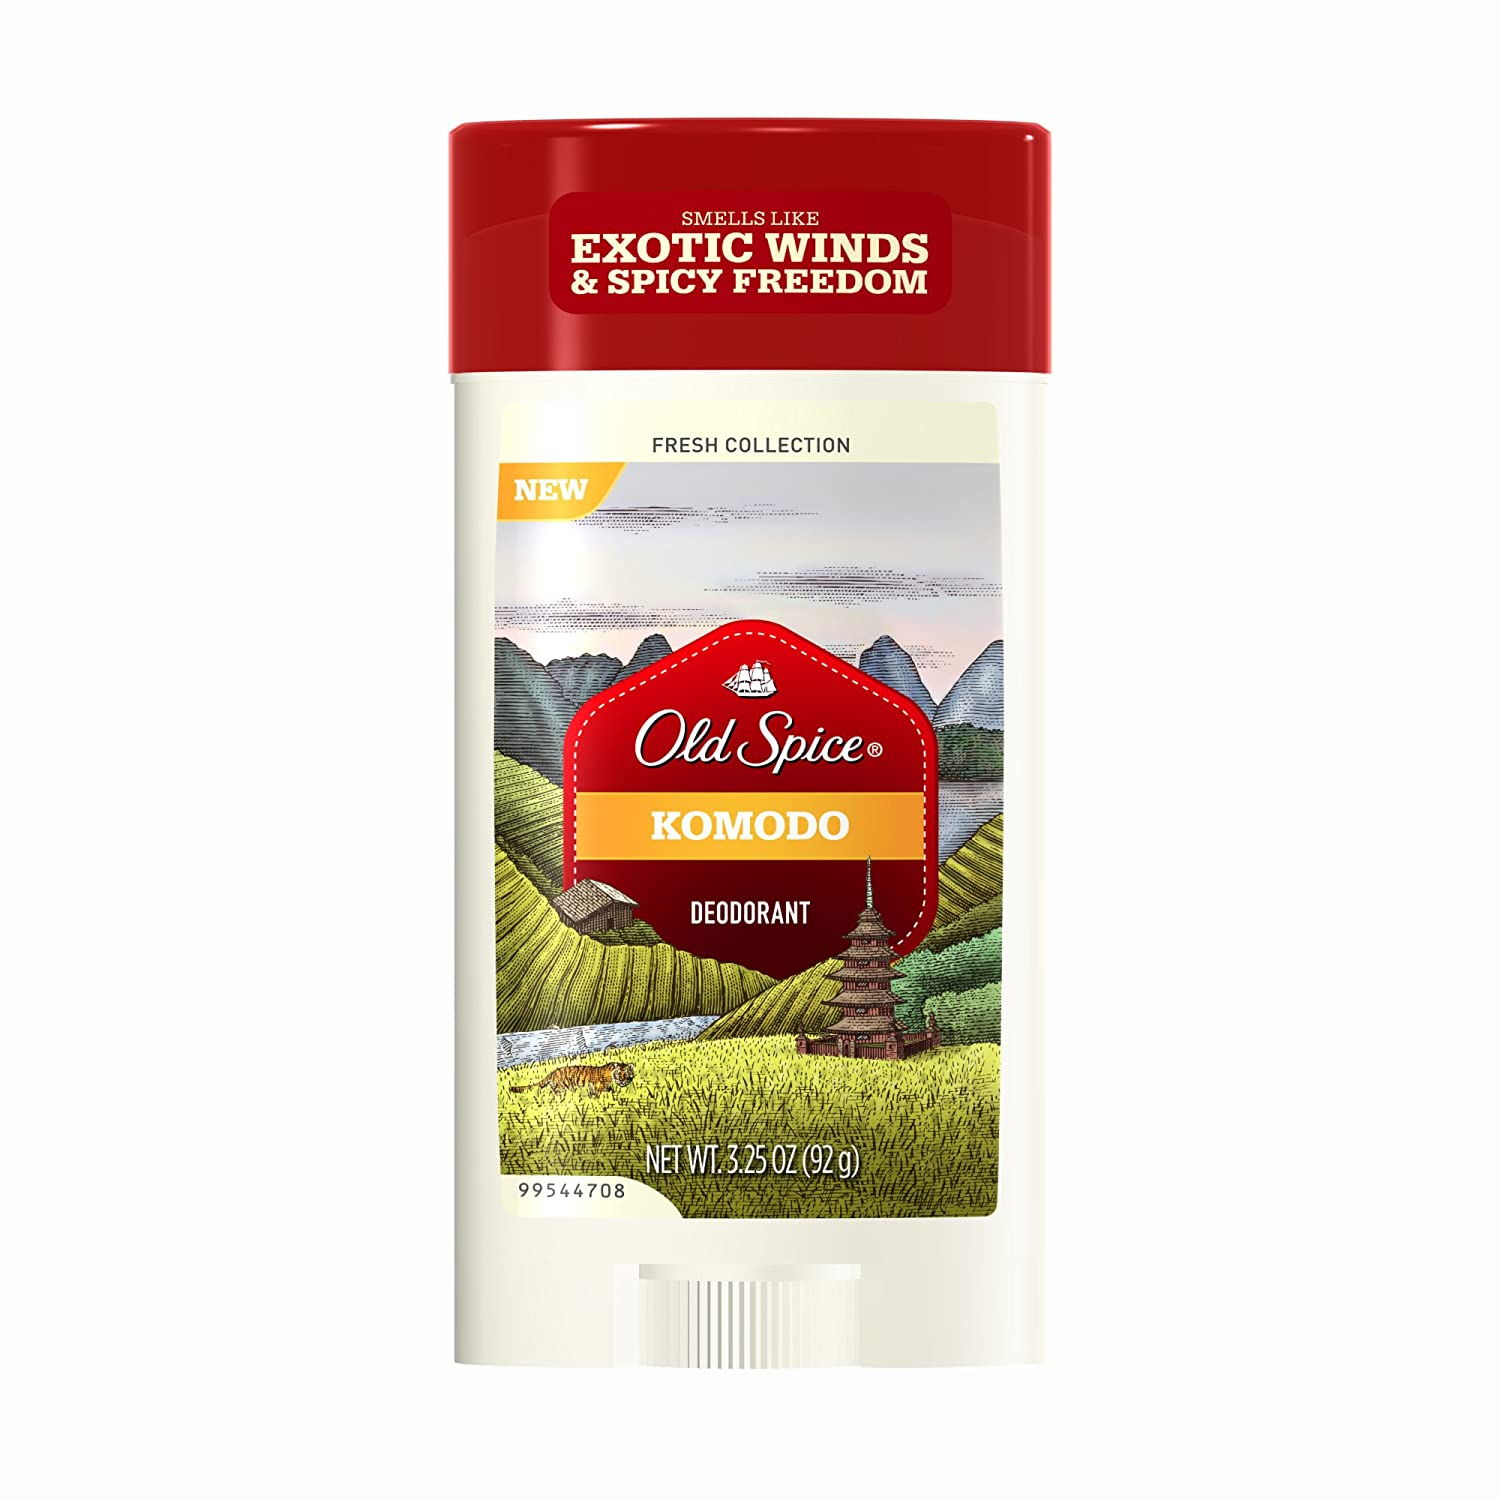 Old Spice Fresh Collection Komodo Deodorant, 3 25-Ounce (Pack of 2)